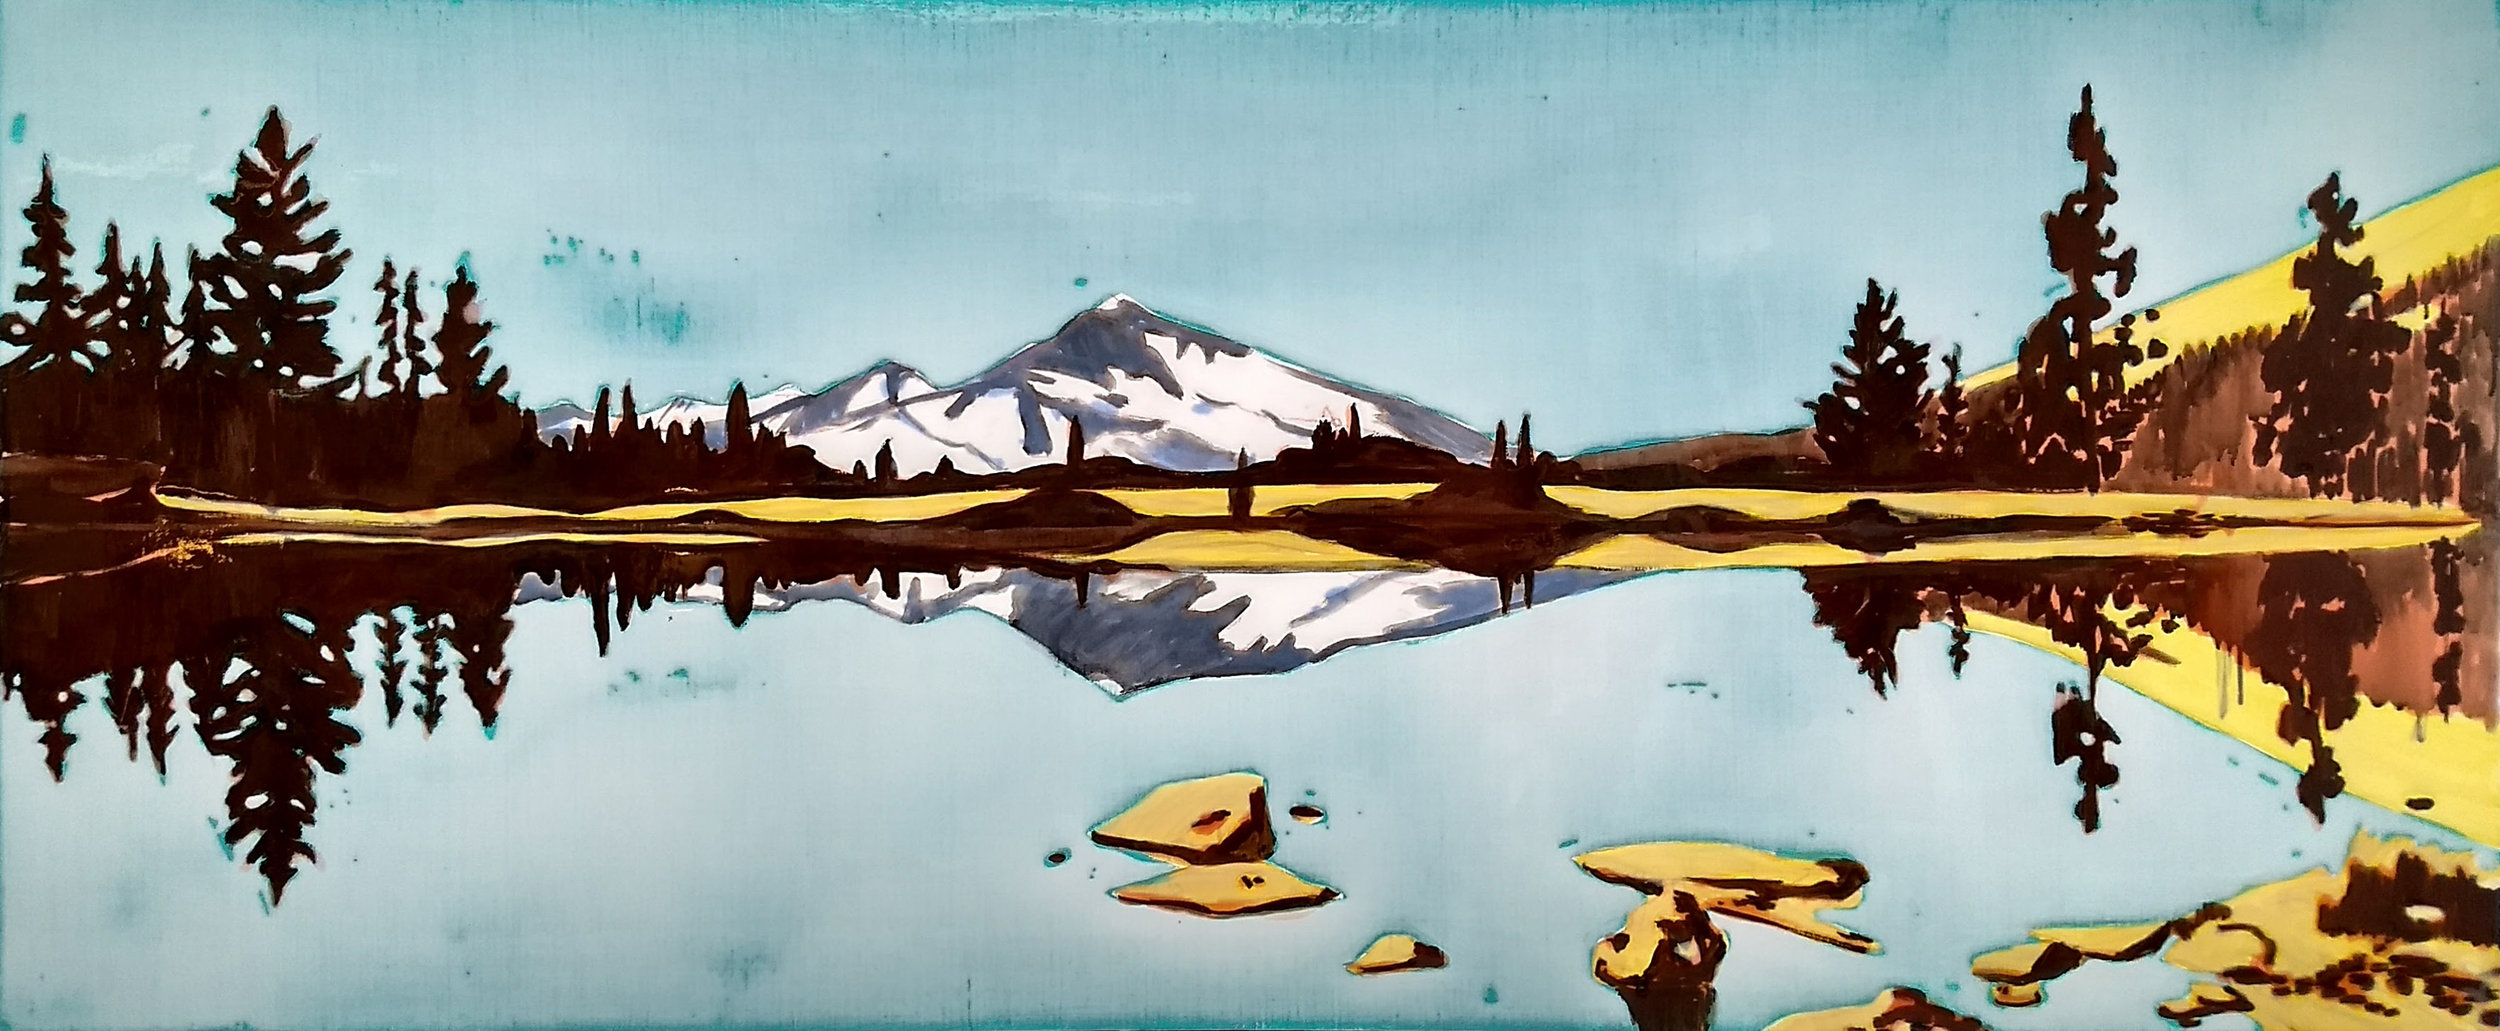 YOSEMiTE-3  60 x 150cm acrylic and epoxy on canvas